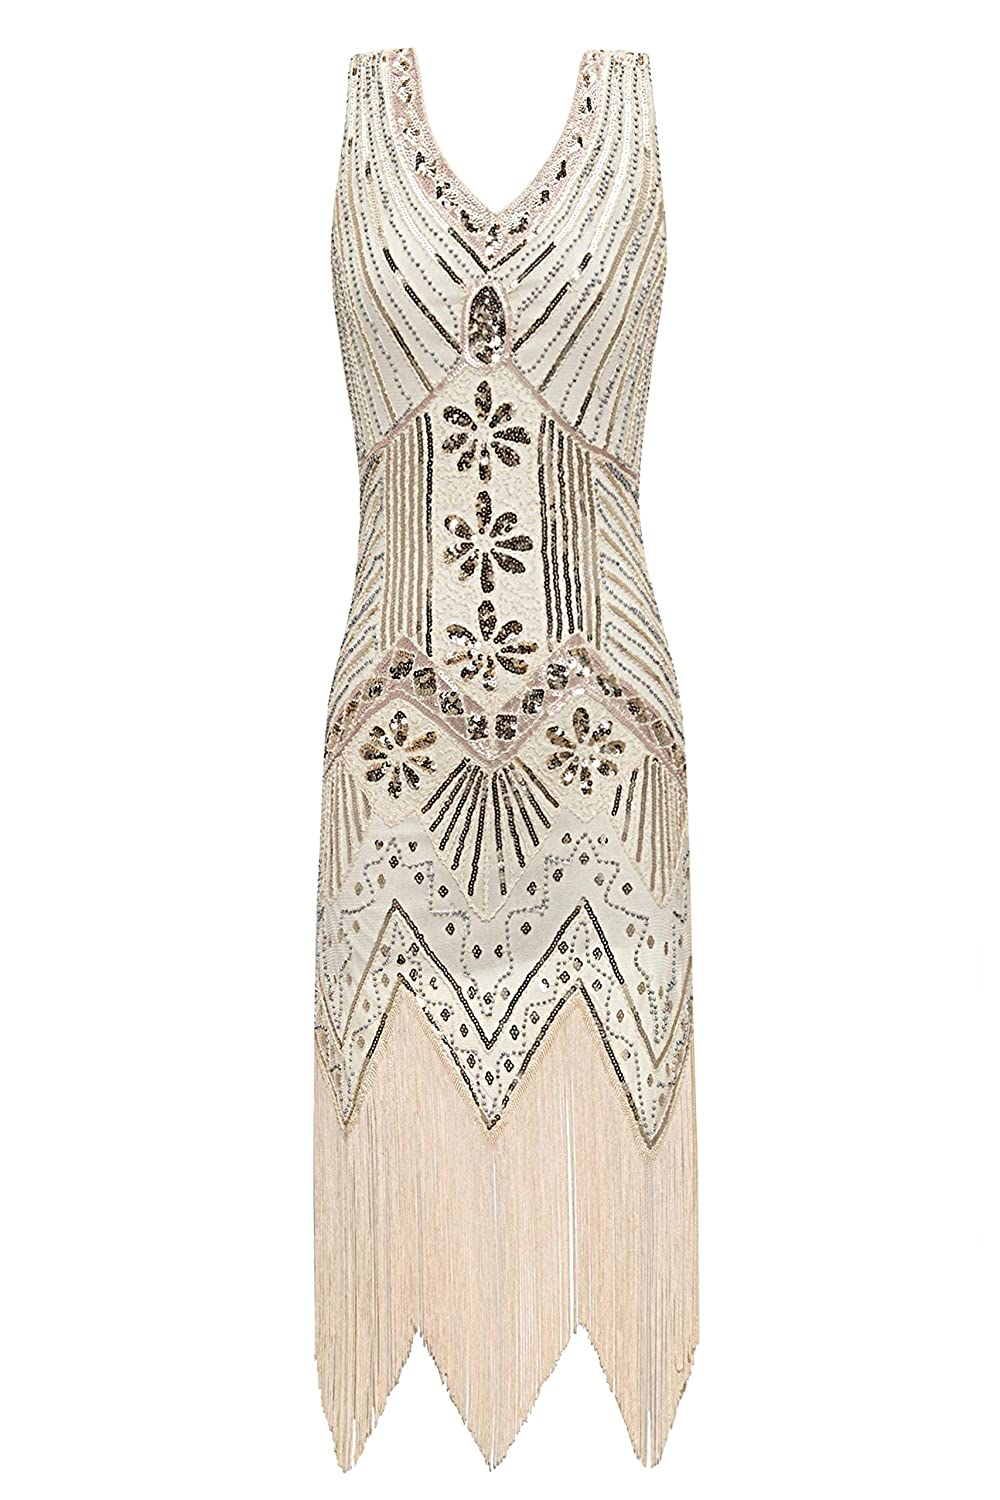 1920s Downton Abbey Dresses Metme Womens 1920s V Neck Beaded Fringed Gatsby Theme Flapper Dress for Prom £47.99 AT vintagedancer.com